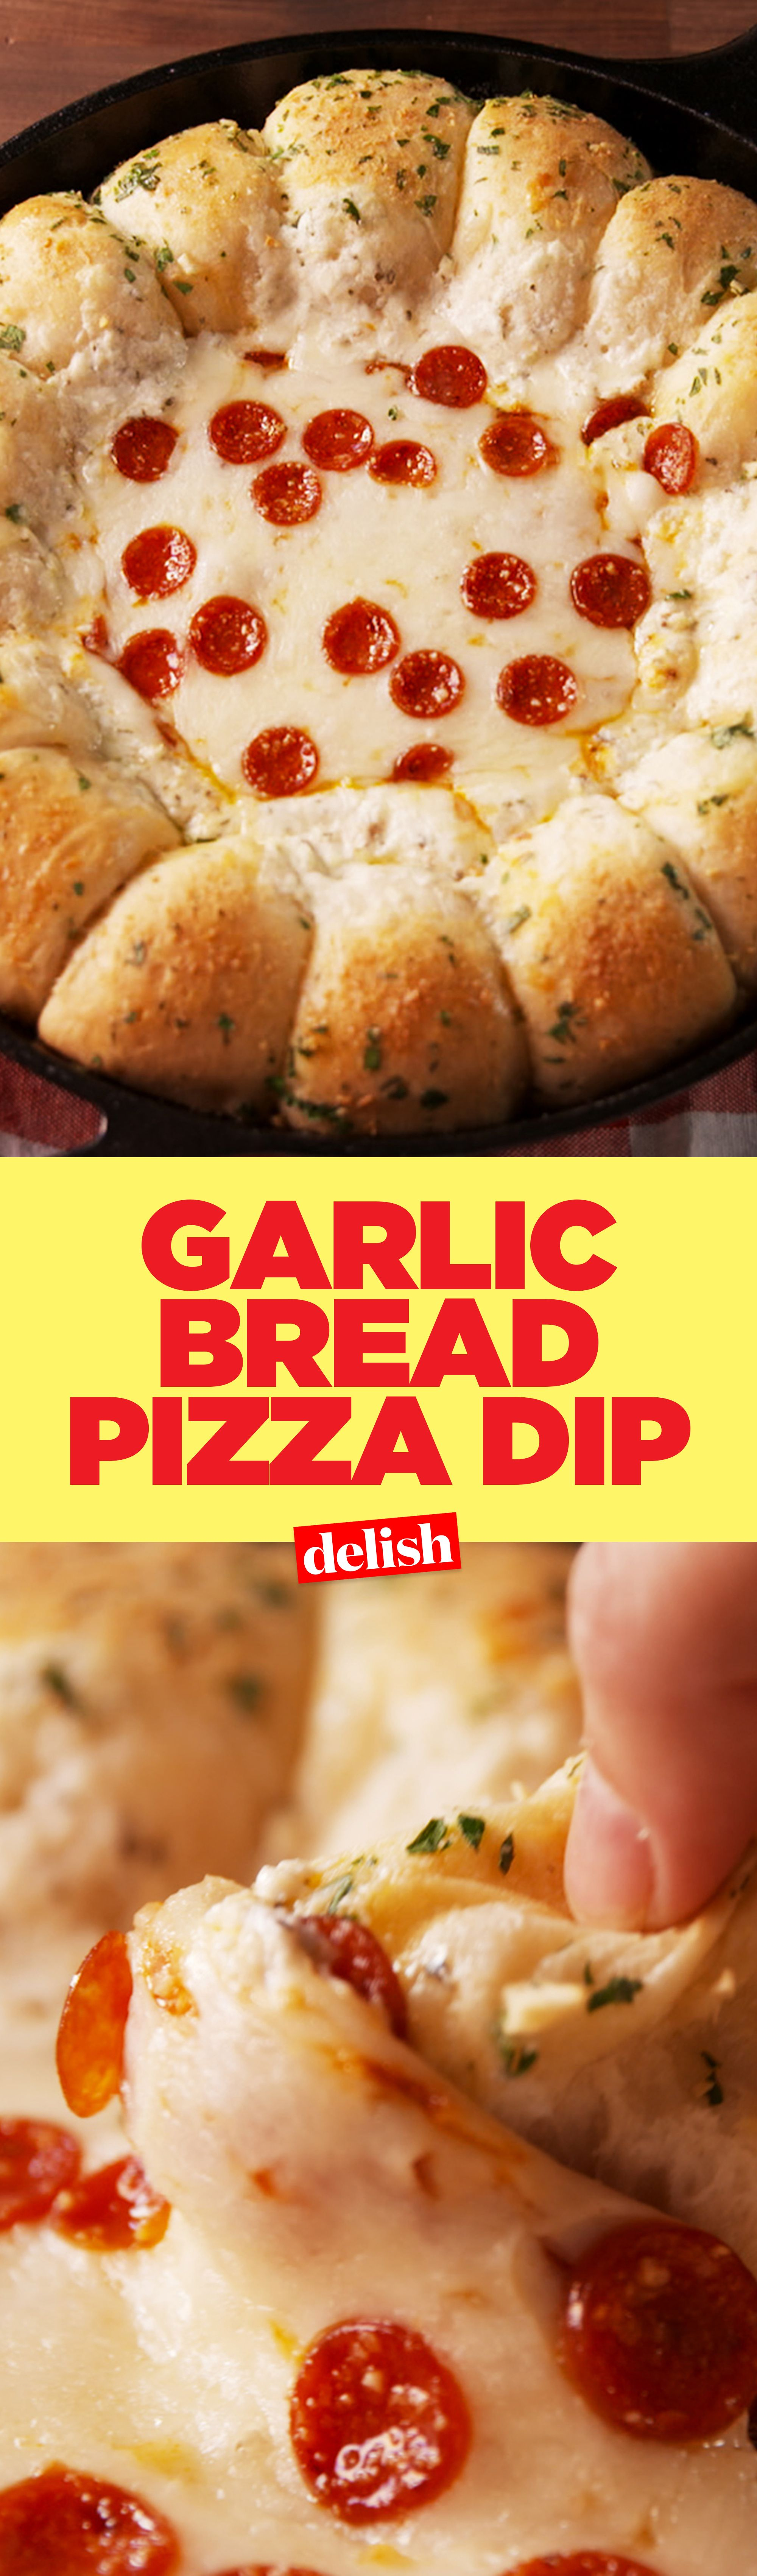 Garlic bread pizza dip recipe garlic bread pizza bread pizza this garlic bread pizza dip has a genius hack that will change the way you party solutioingenieria Image collections